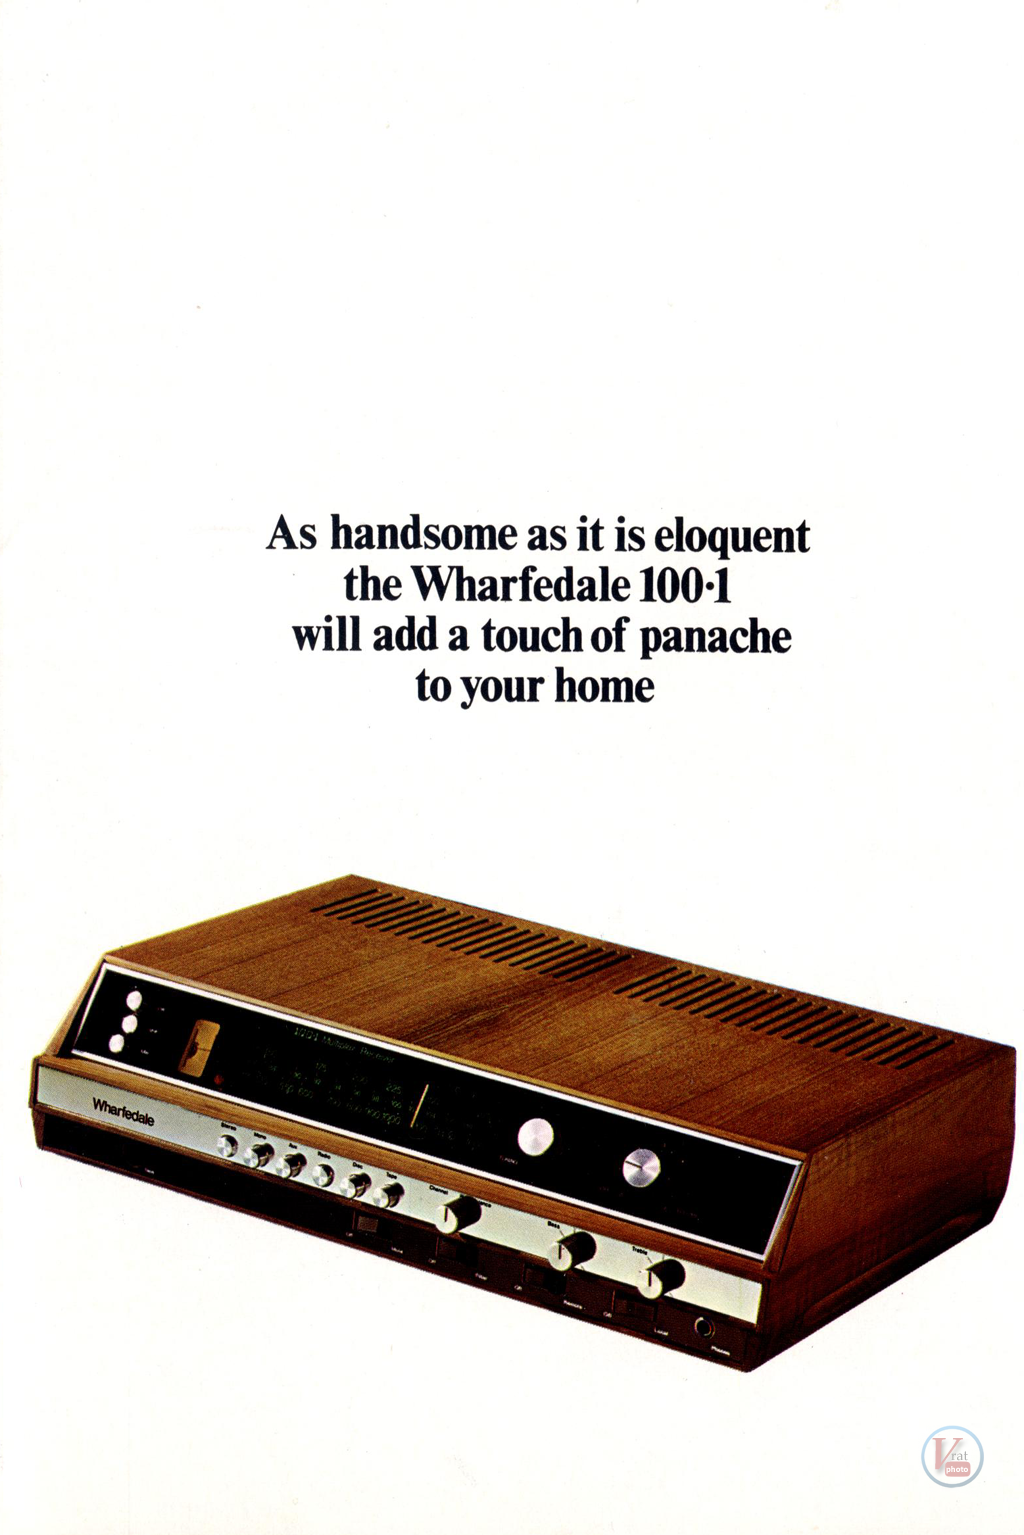 Wharfedale Amp/Receiver 17